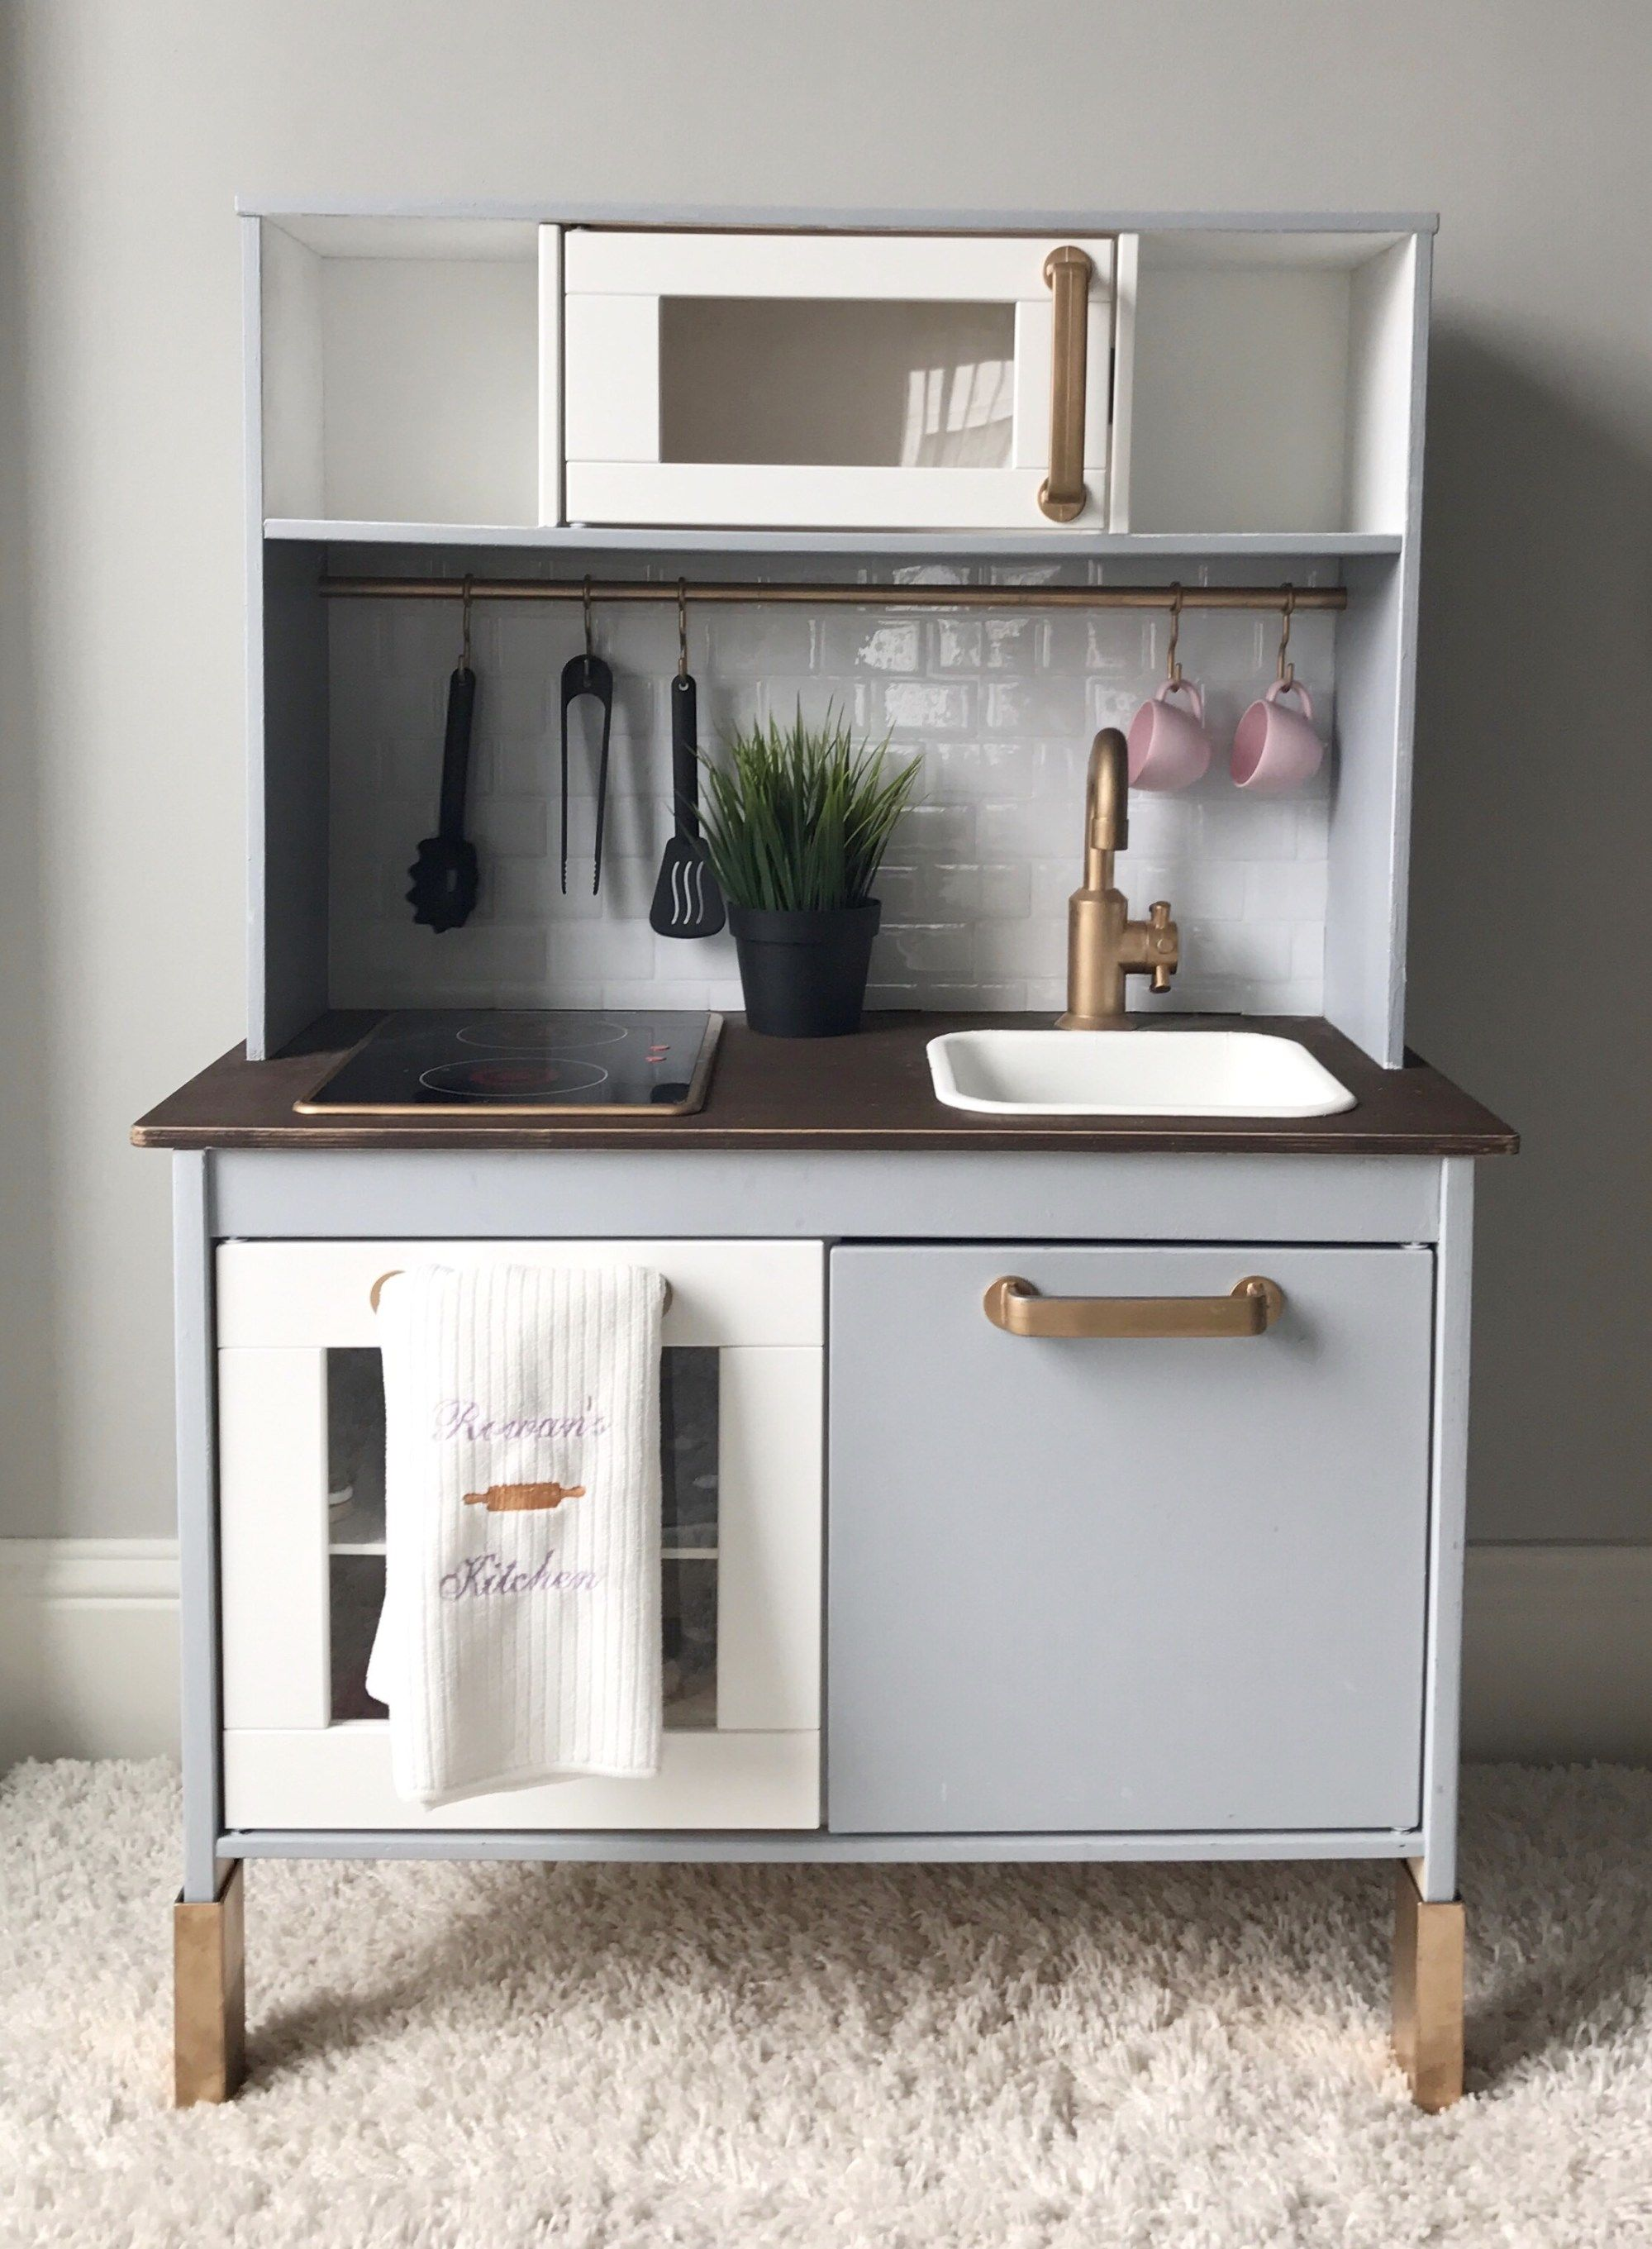 ikea duktig kitchen diy mrs happy gilmore bluebird preschool rh pinterest com